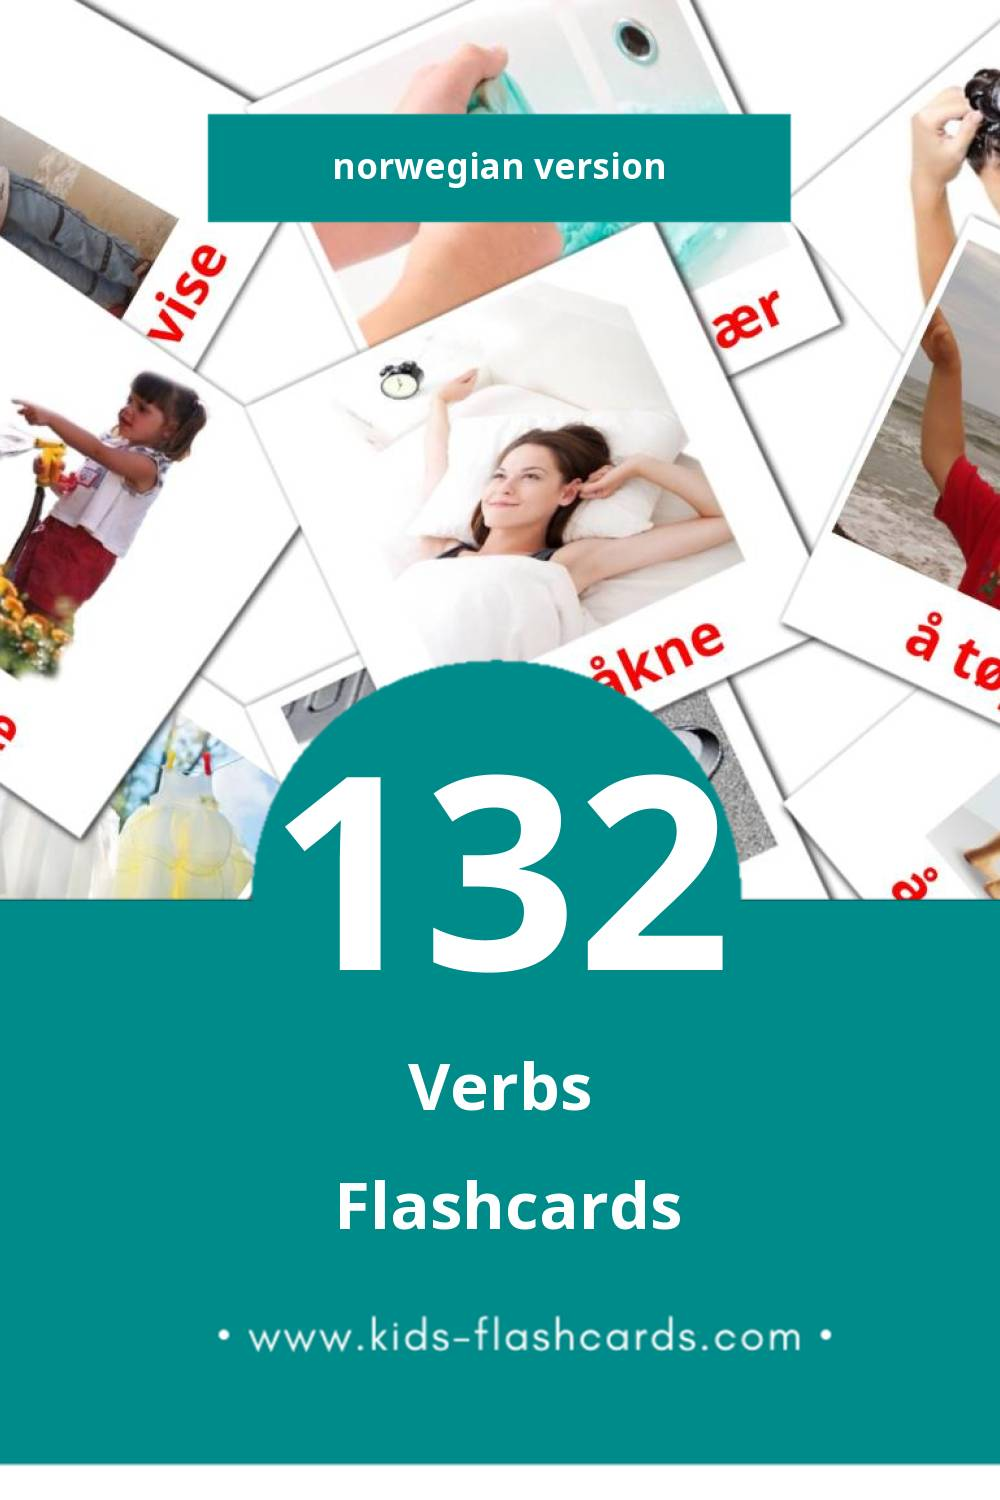 Visual verb Flashcards for Toddlers (133 cards in Norwegian)